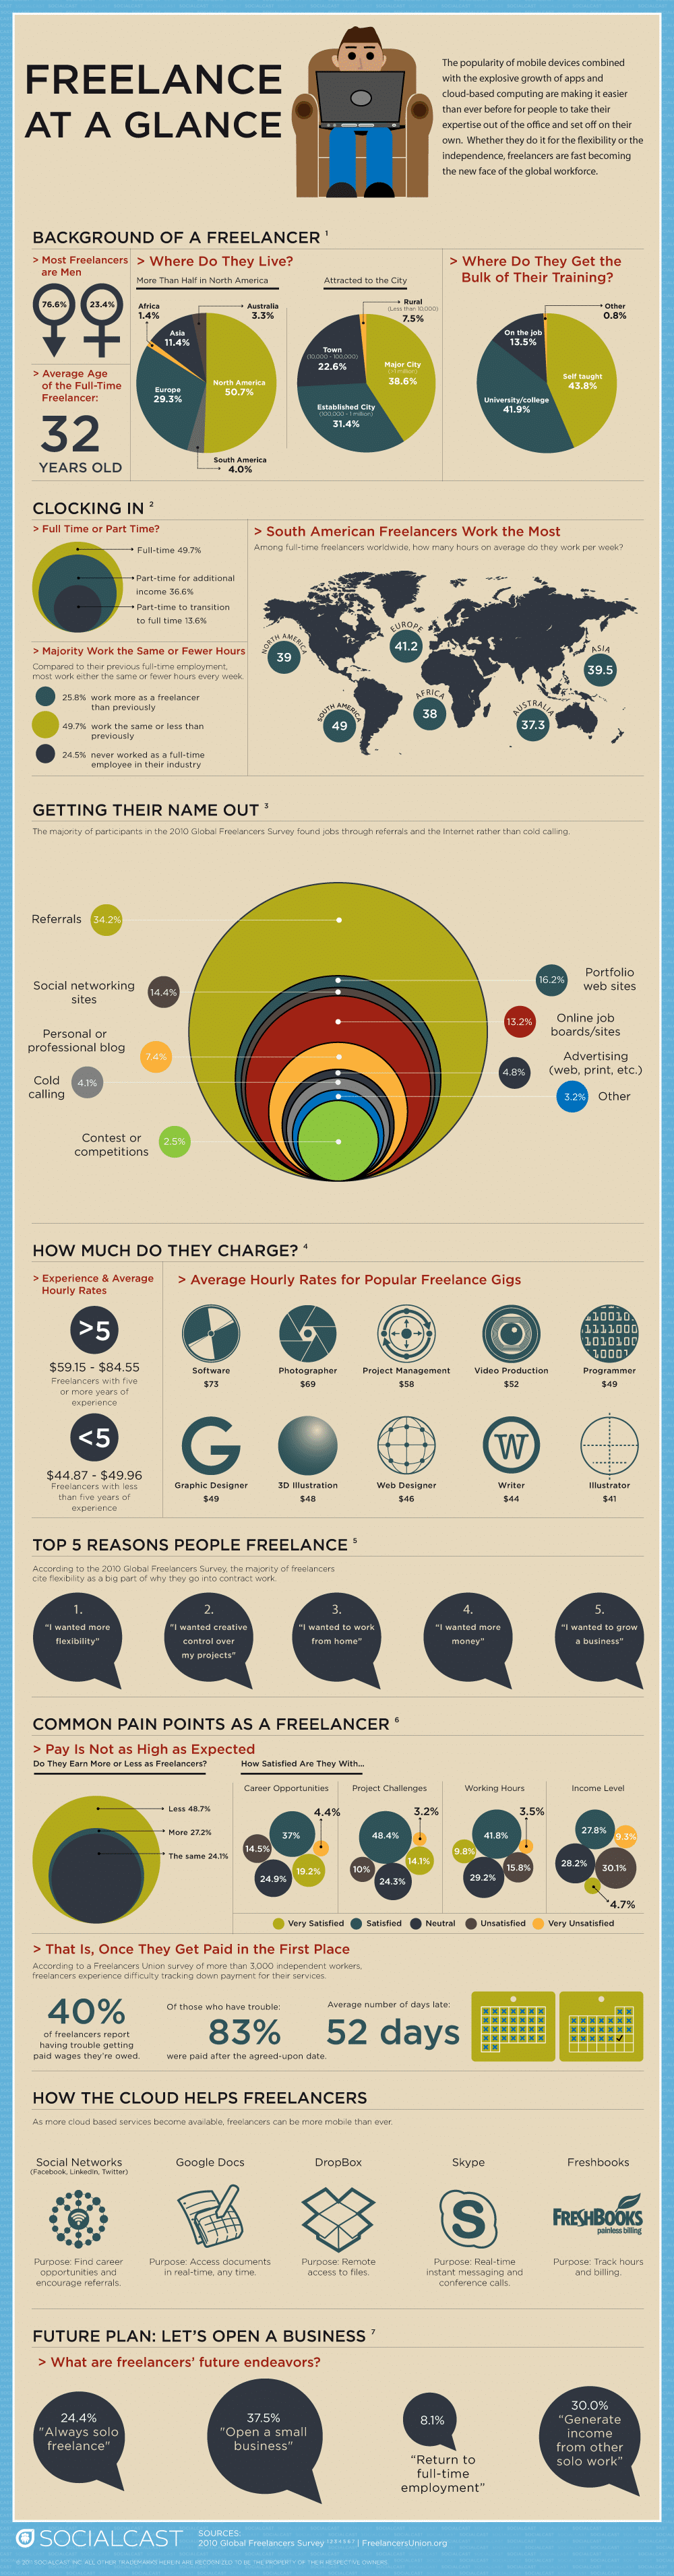 Freelance At A Glance Infographic